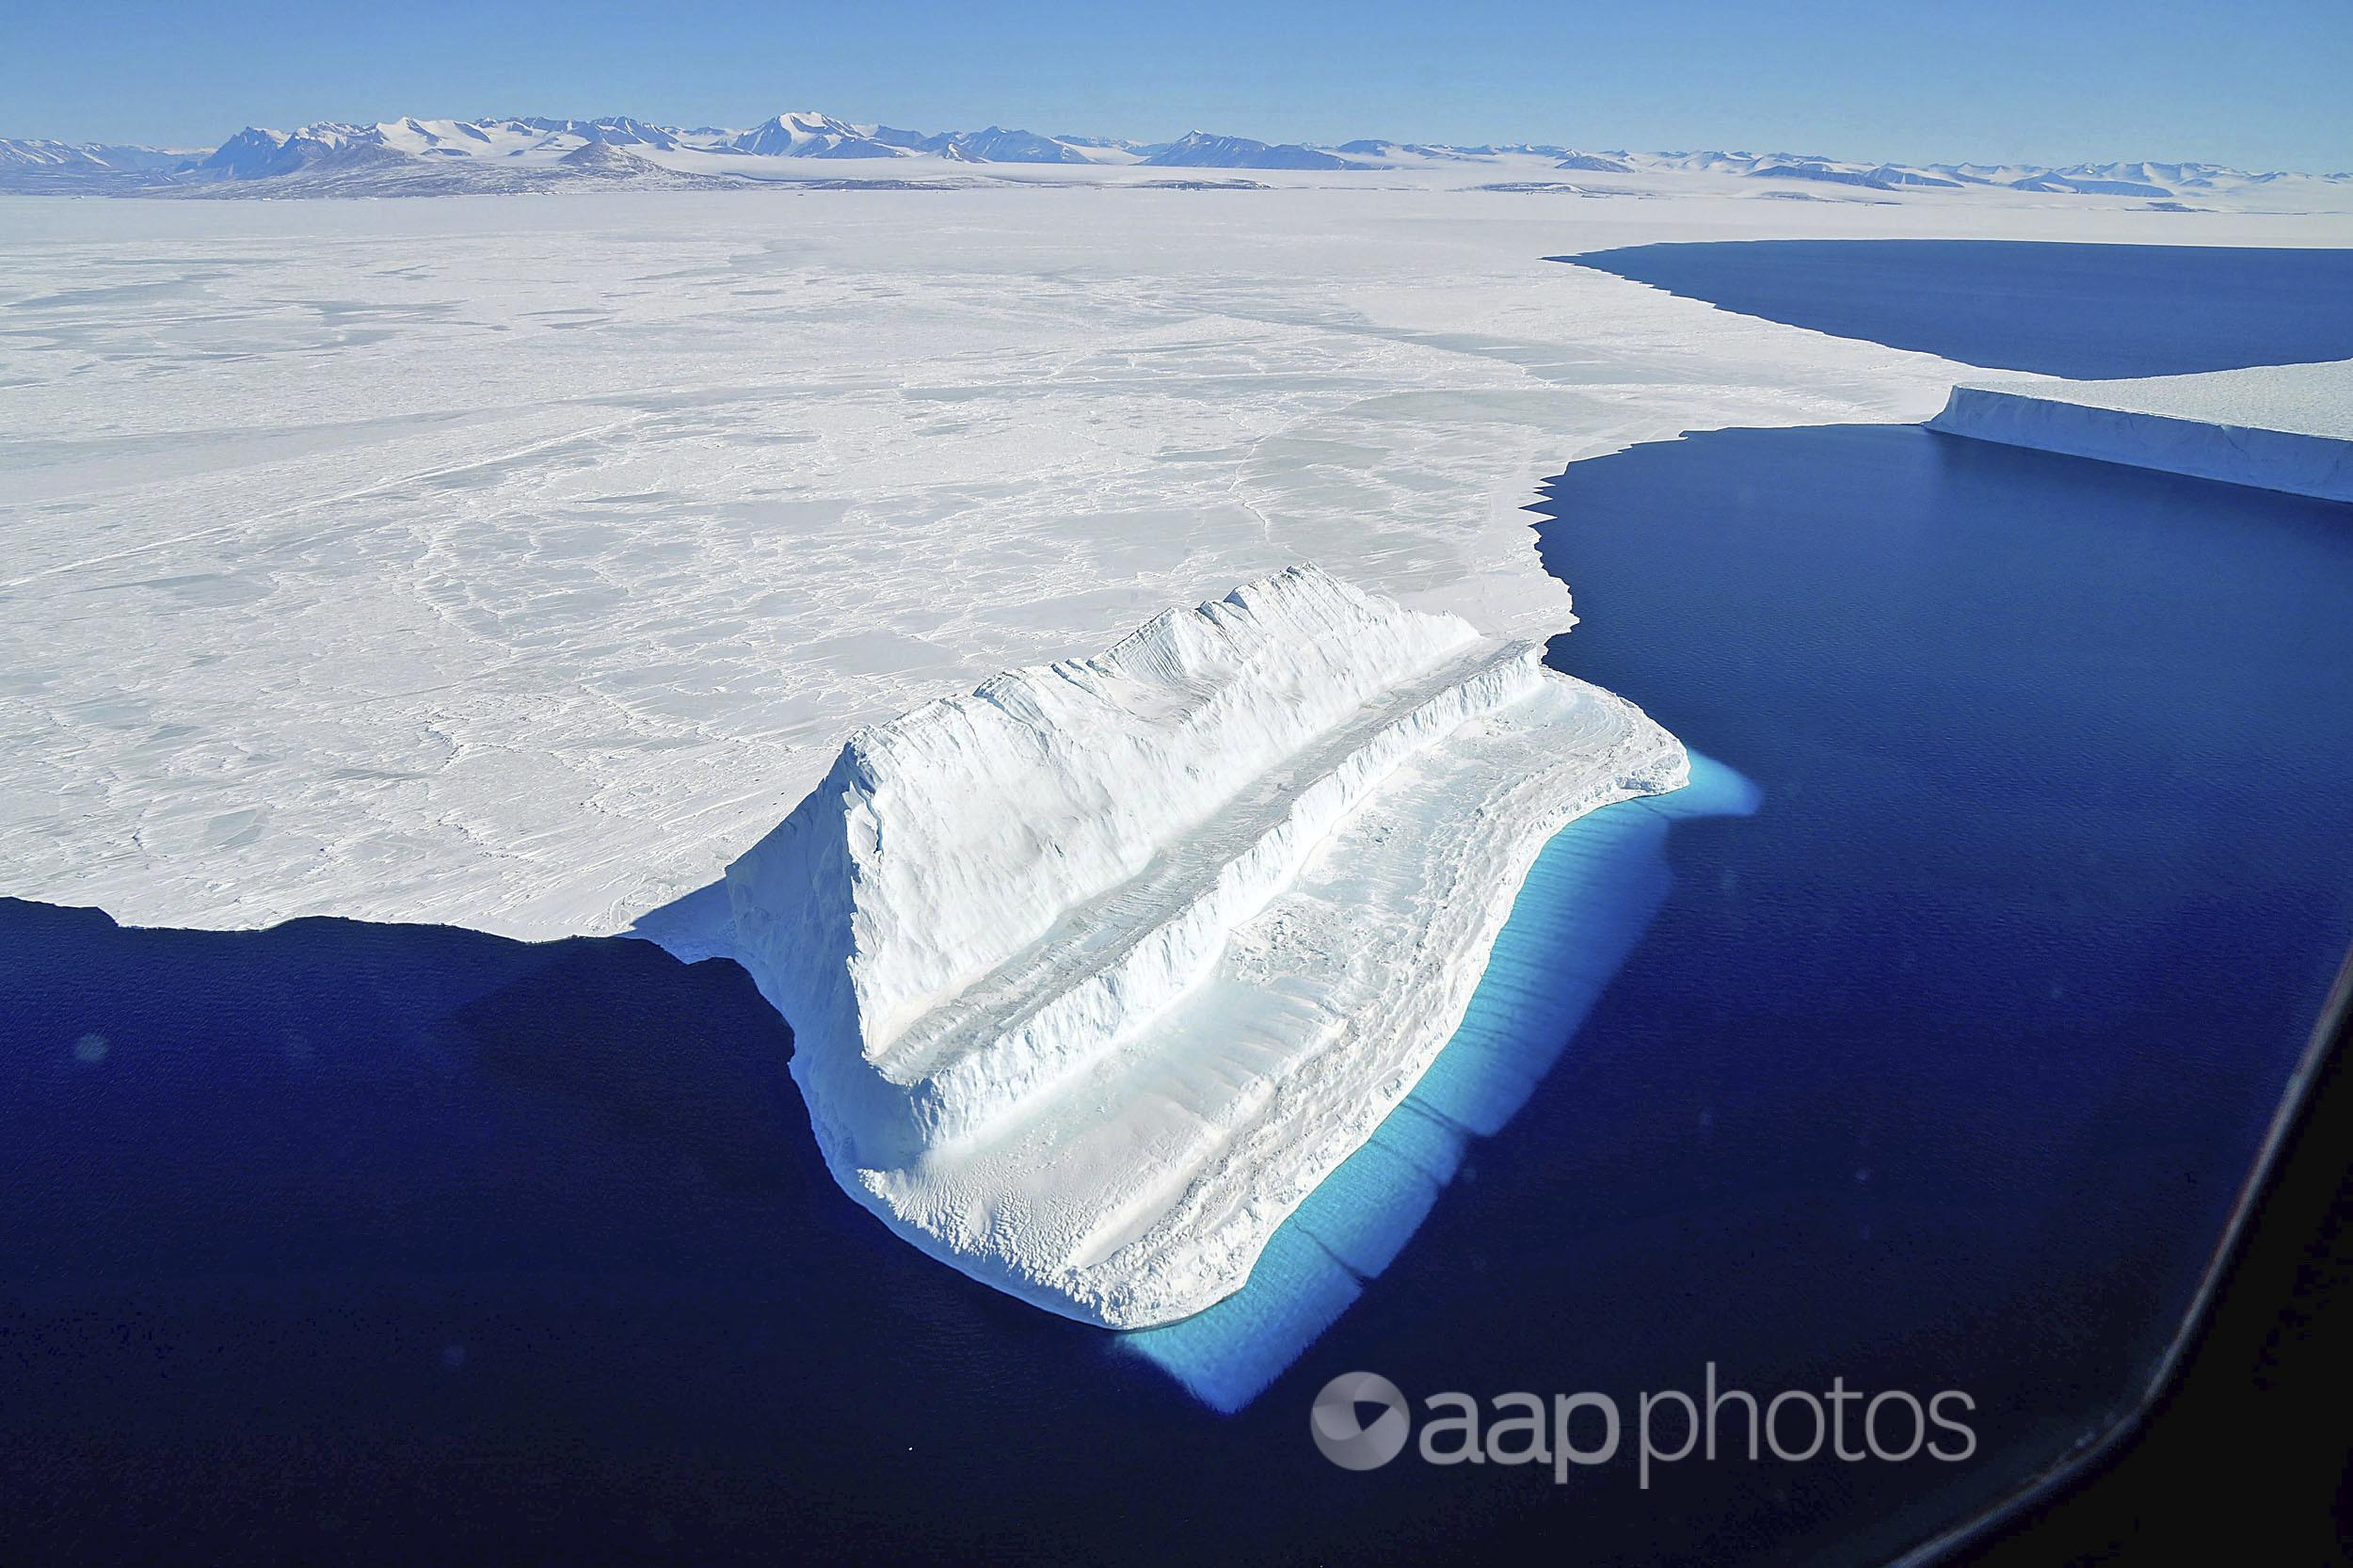 The frigid Antarctic region is an expanse of white ice and blue waters